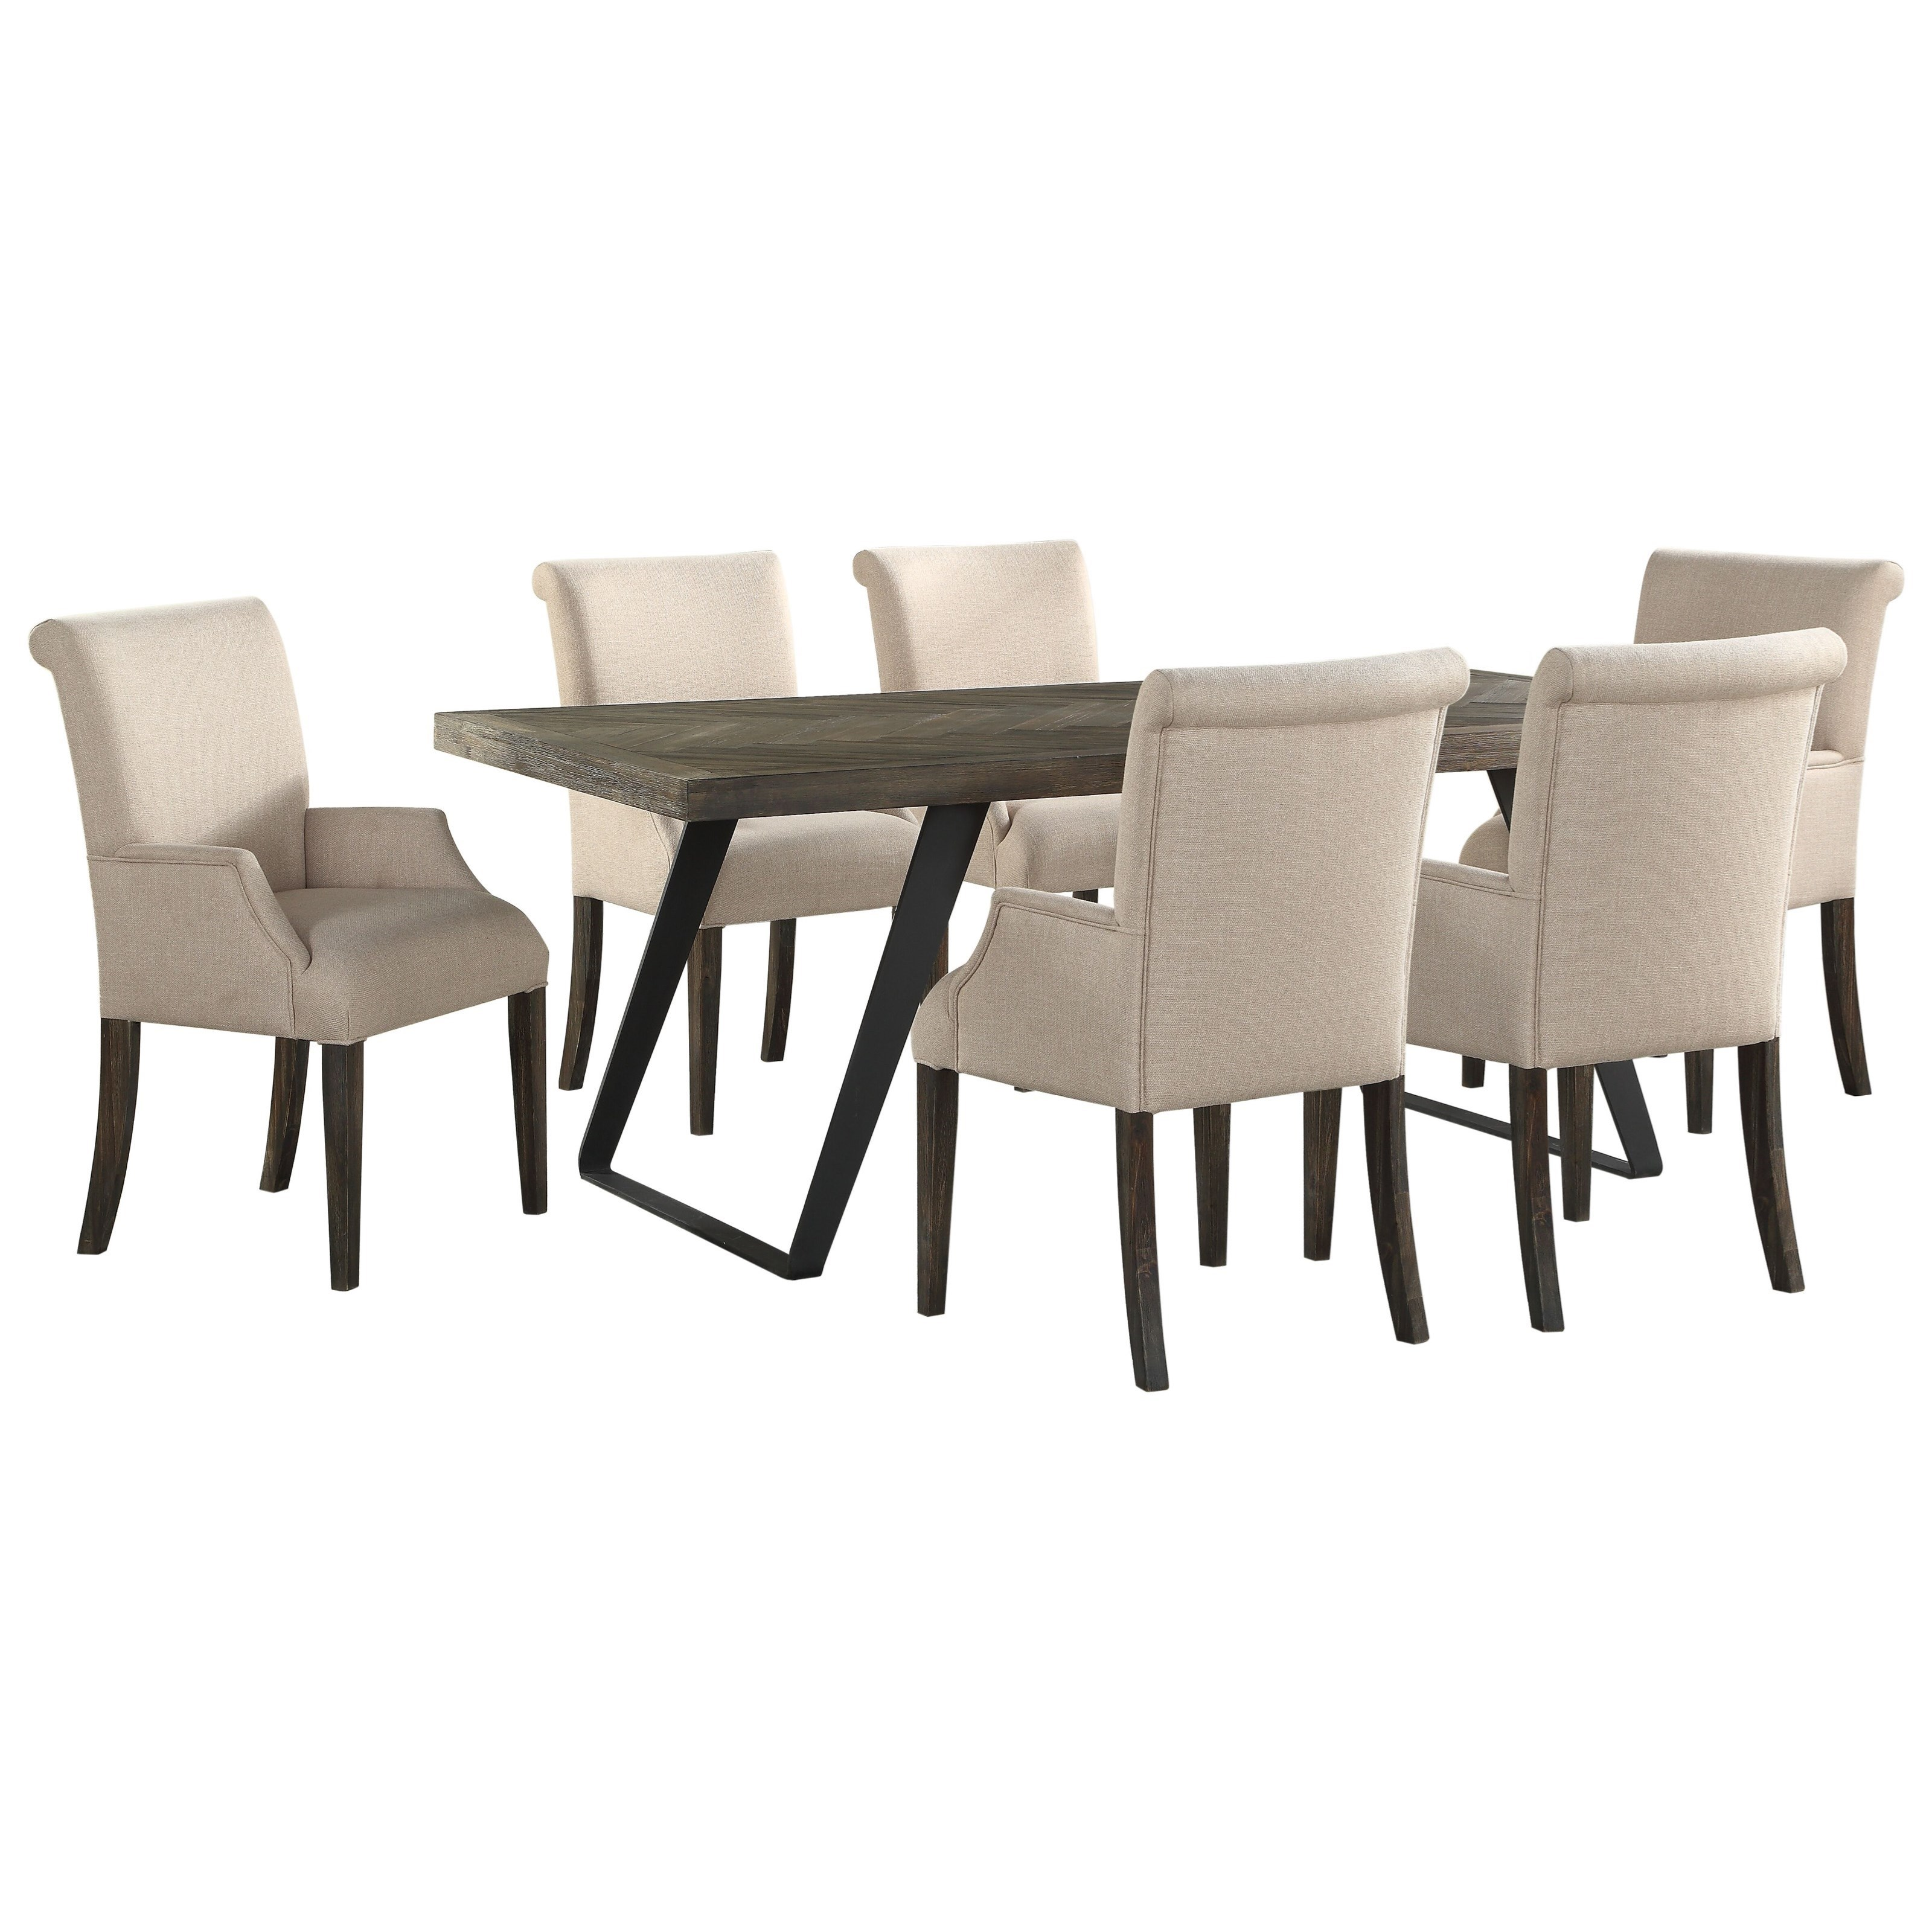 Aspen Court 7-Piece Table and Chair Set by C2C at Walker's Furniture